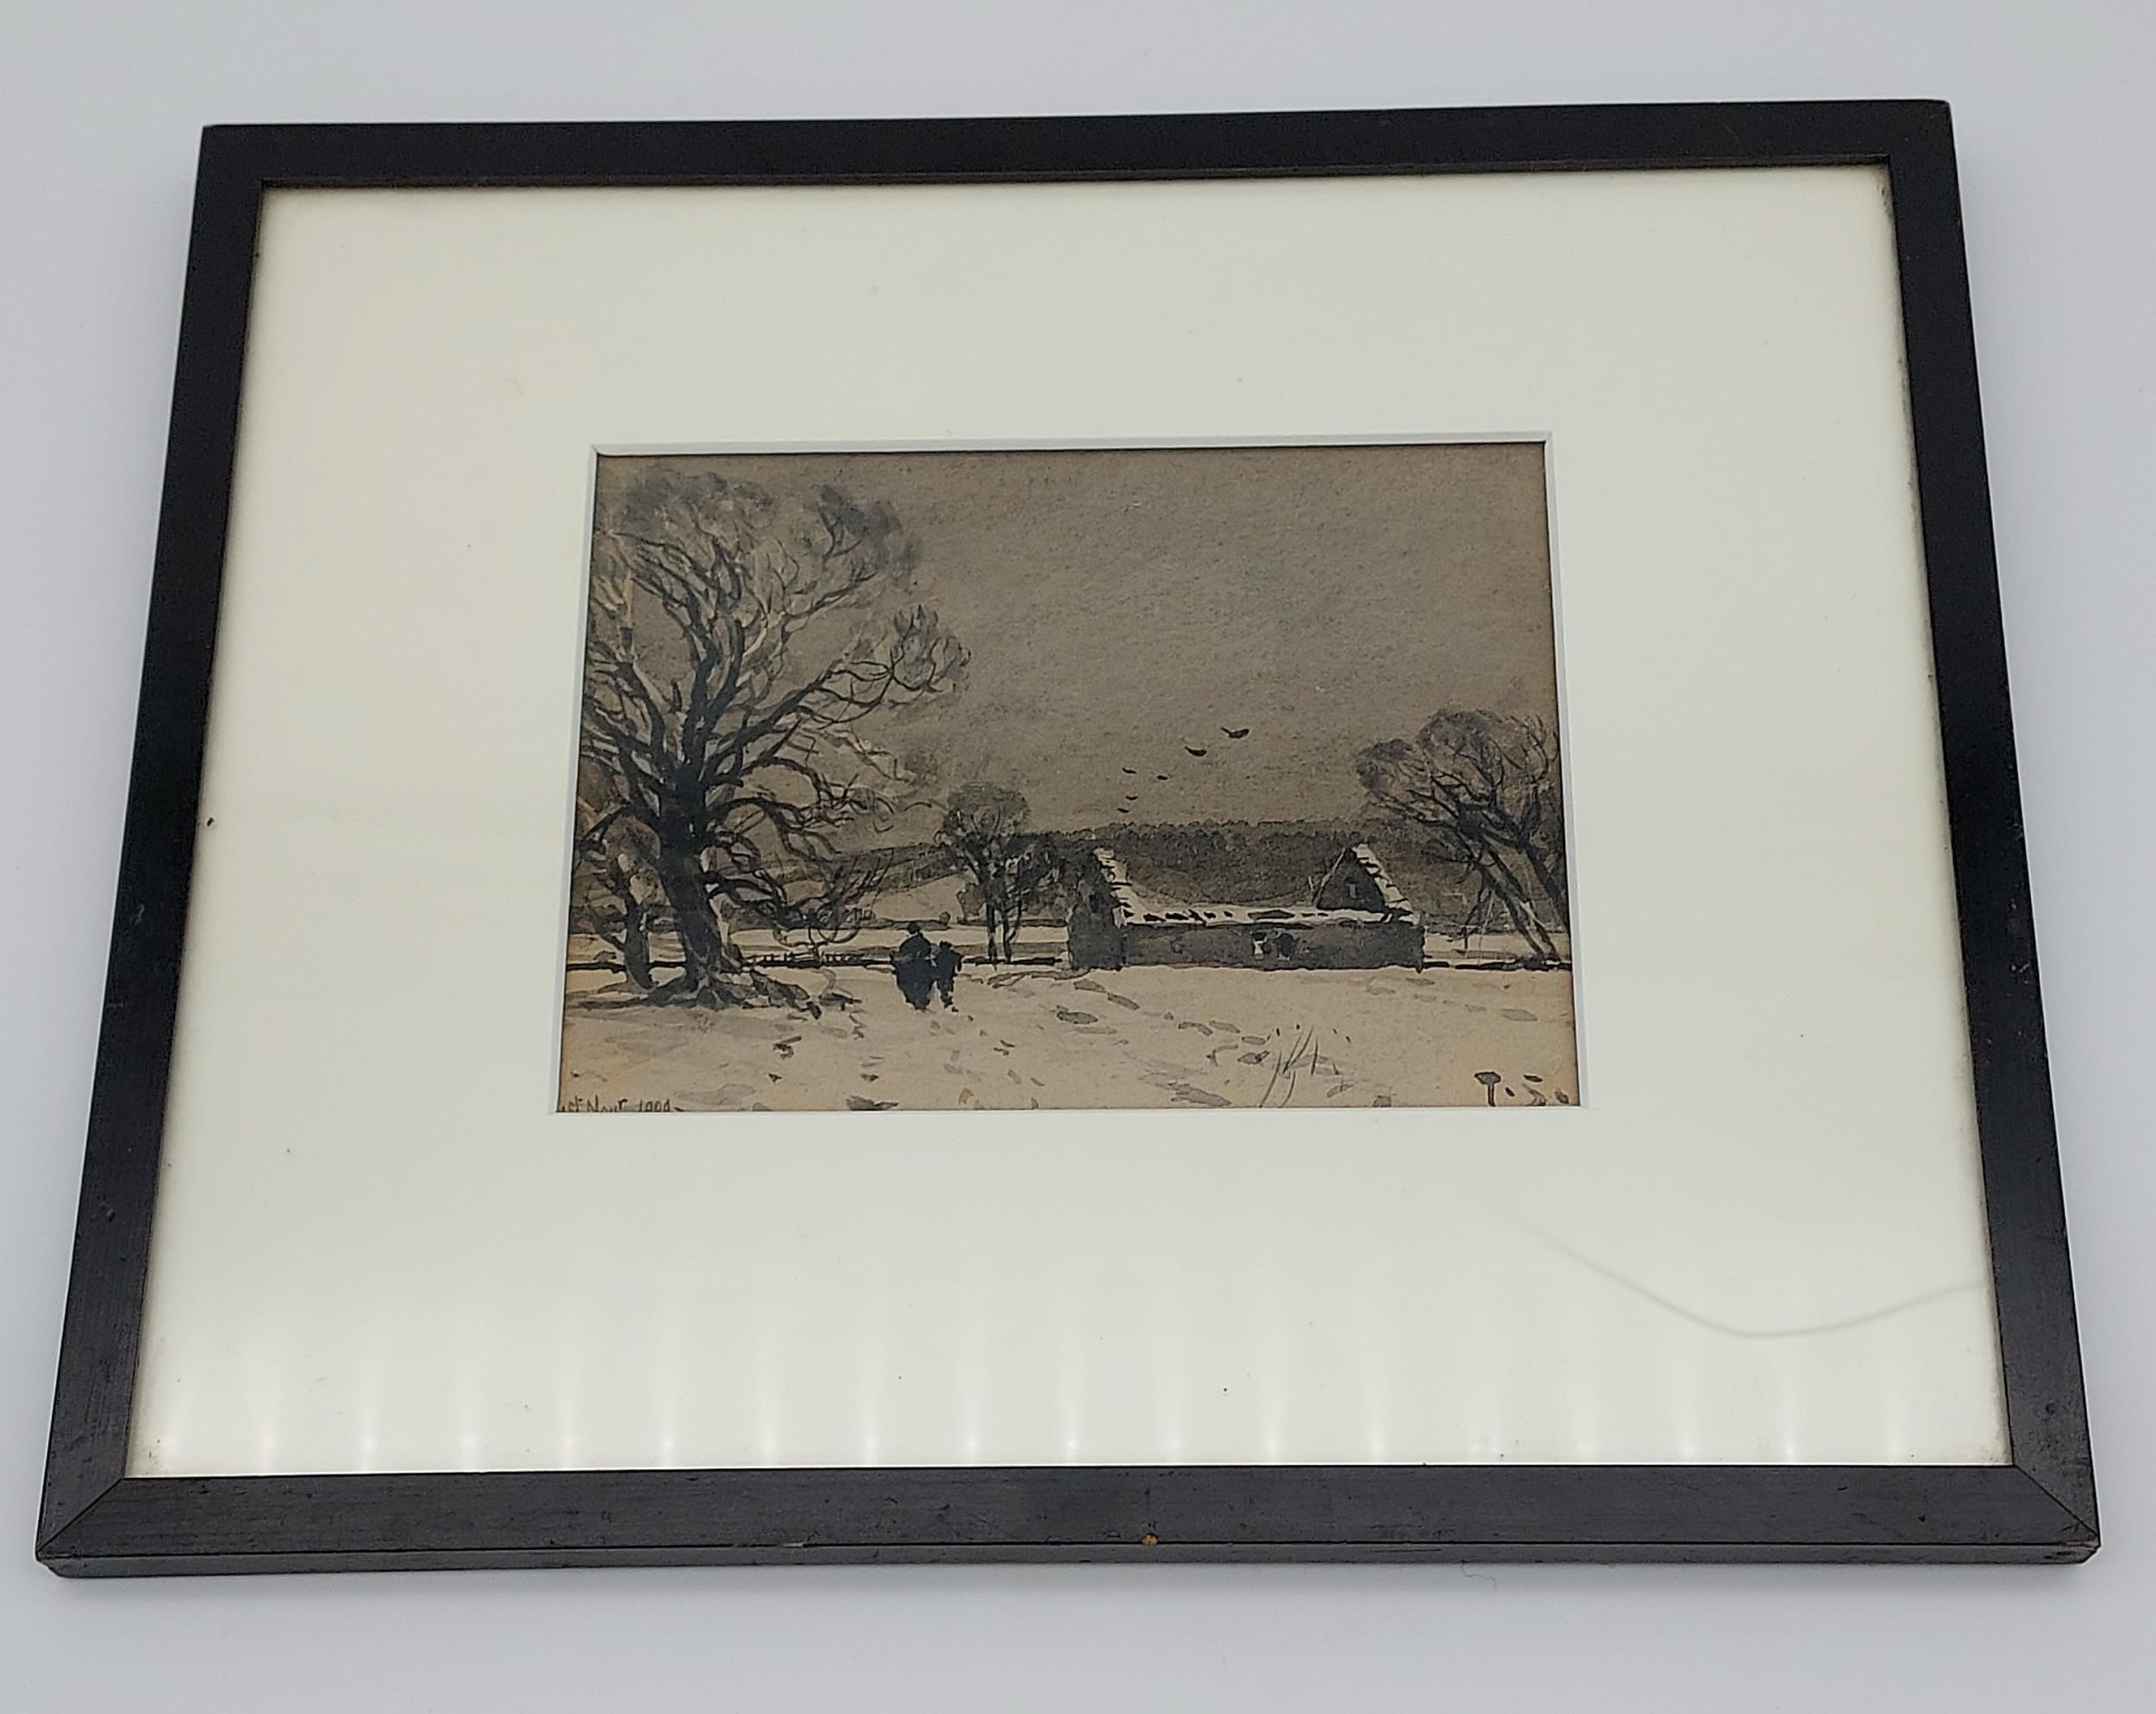 An early 1900's watercolour depicting a winter night scene. Signed T.S. Dated 1909.